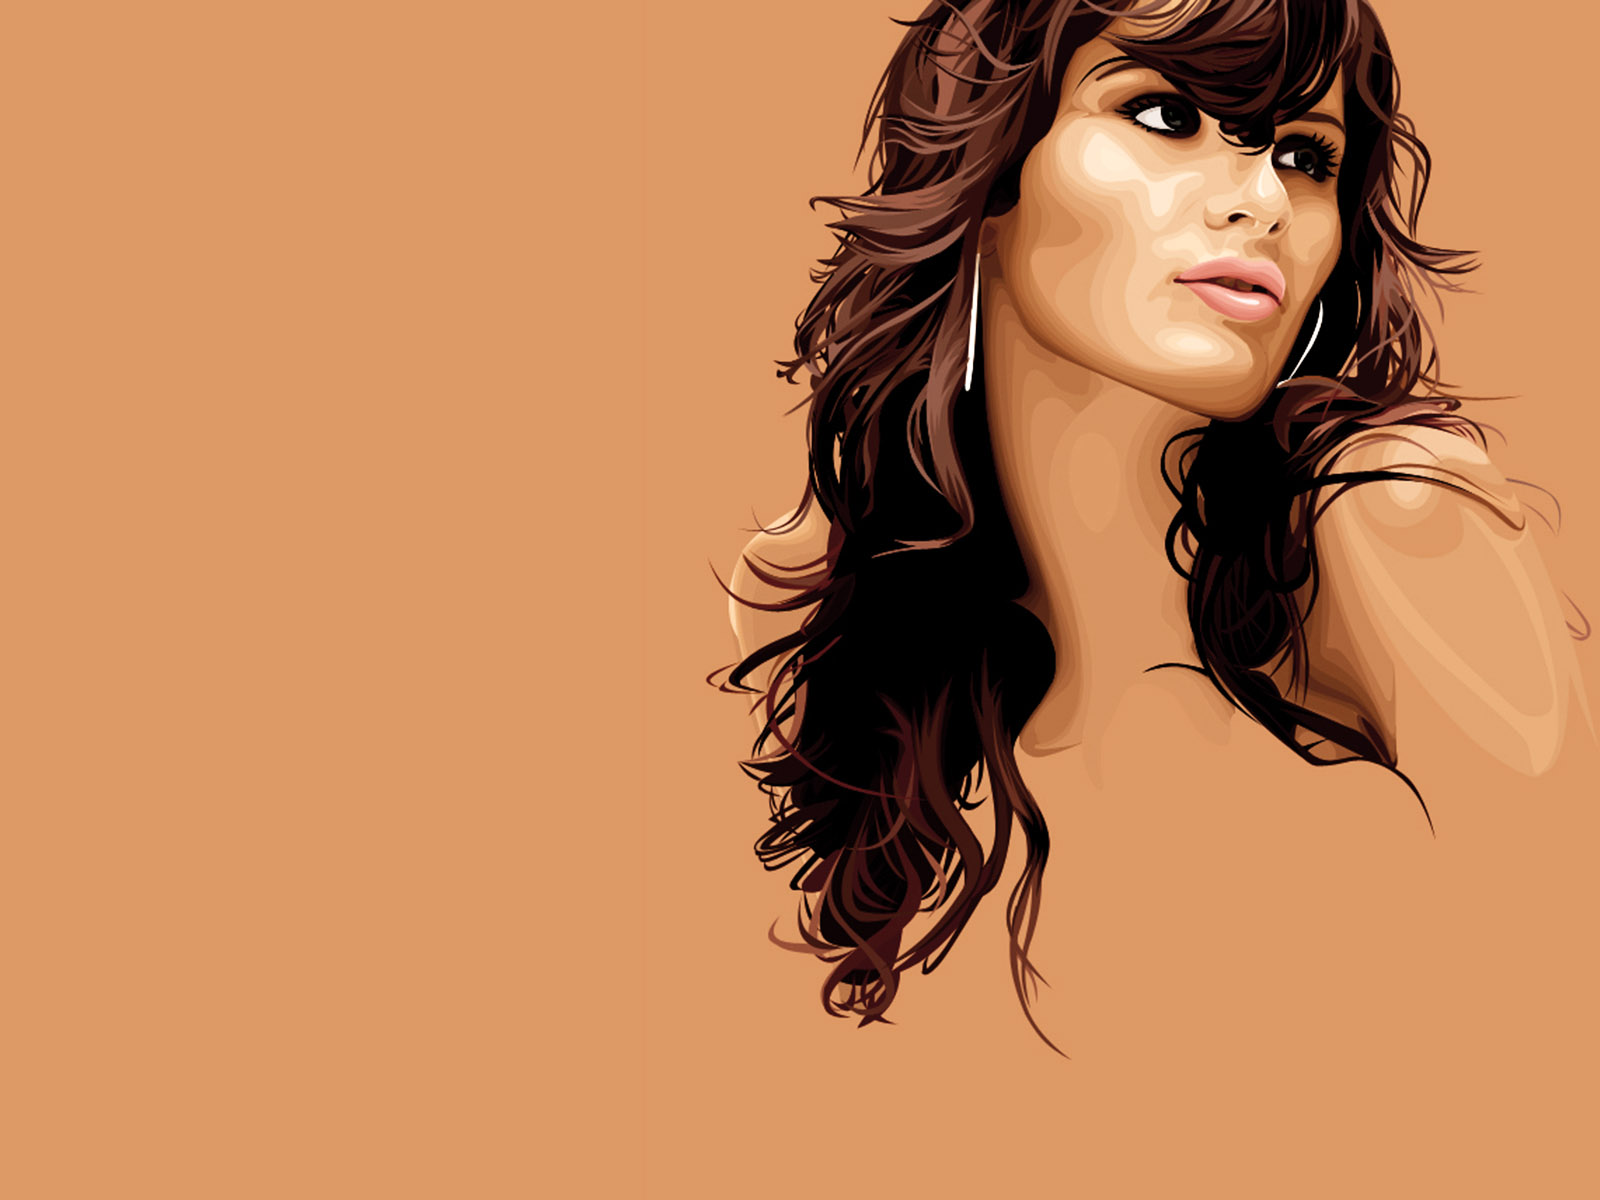 wallpaper of women  Women Wallpaper and Background Image | 1600x1200 | ID:297053 ...